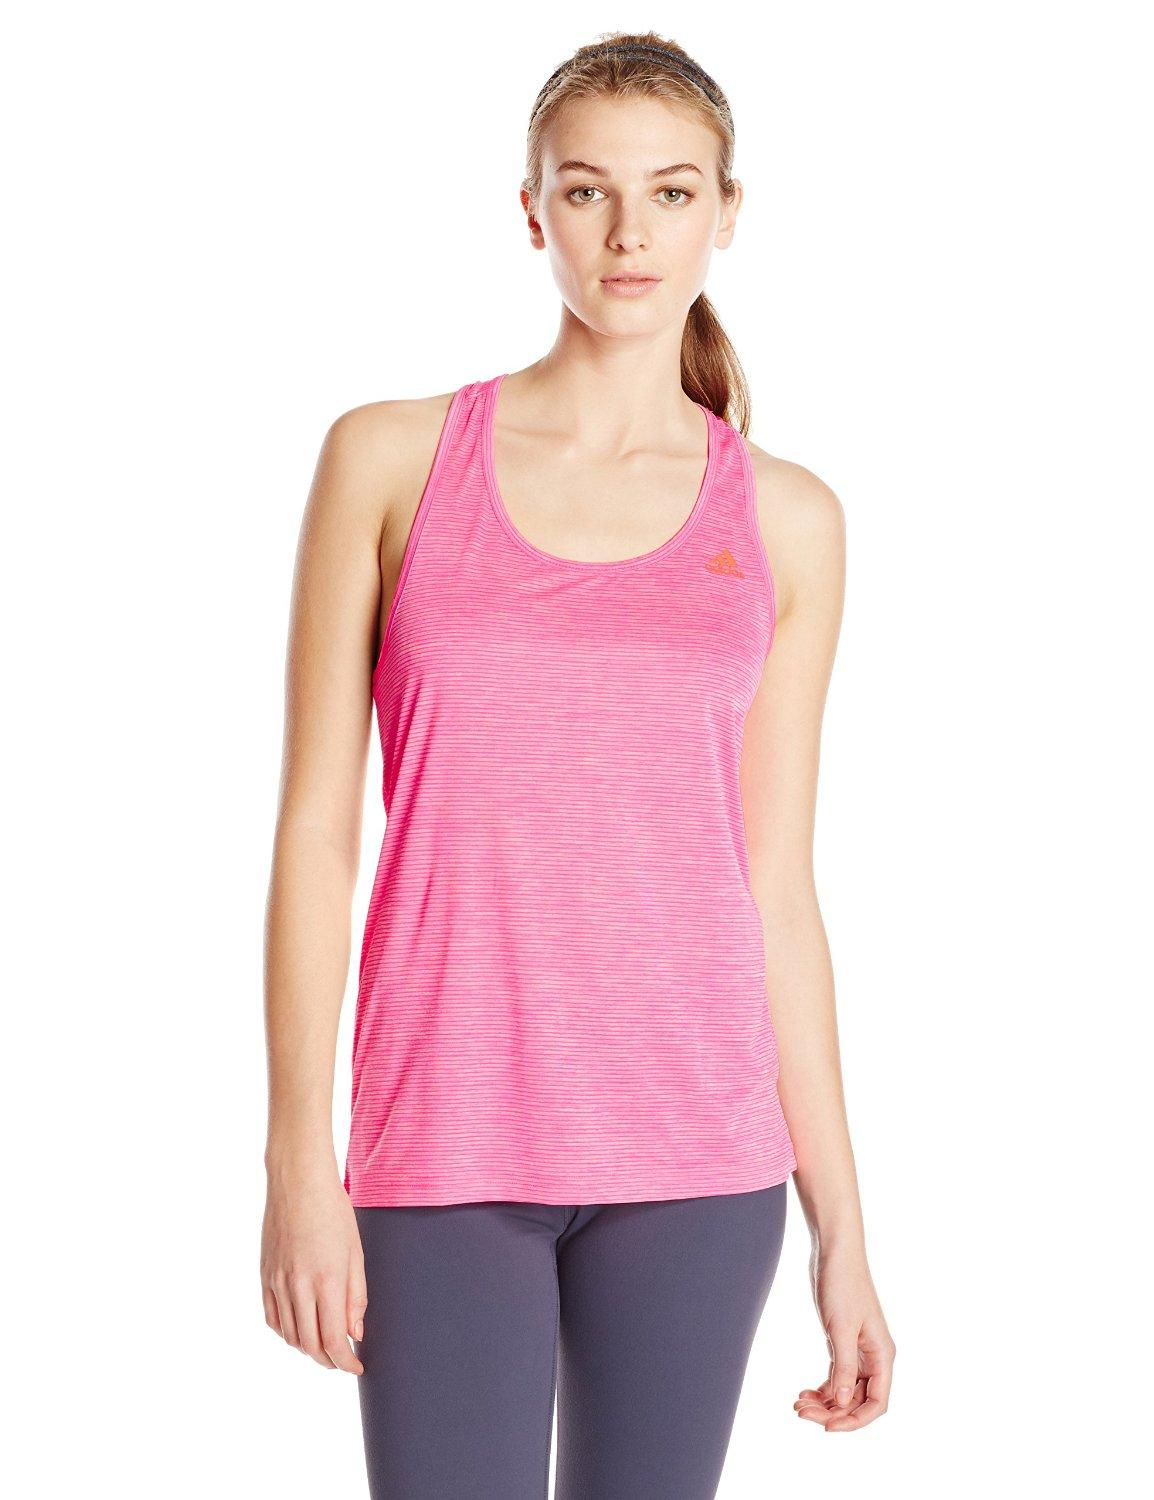 adidas Performance Women's Boyfriend Crush Tank Top